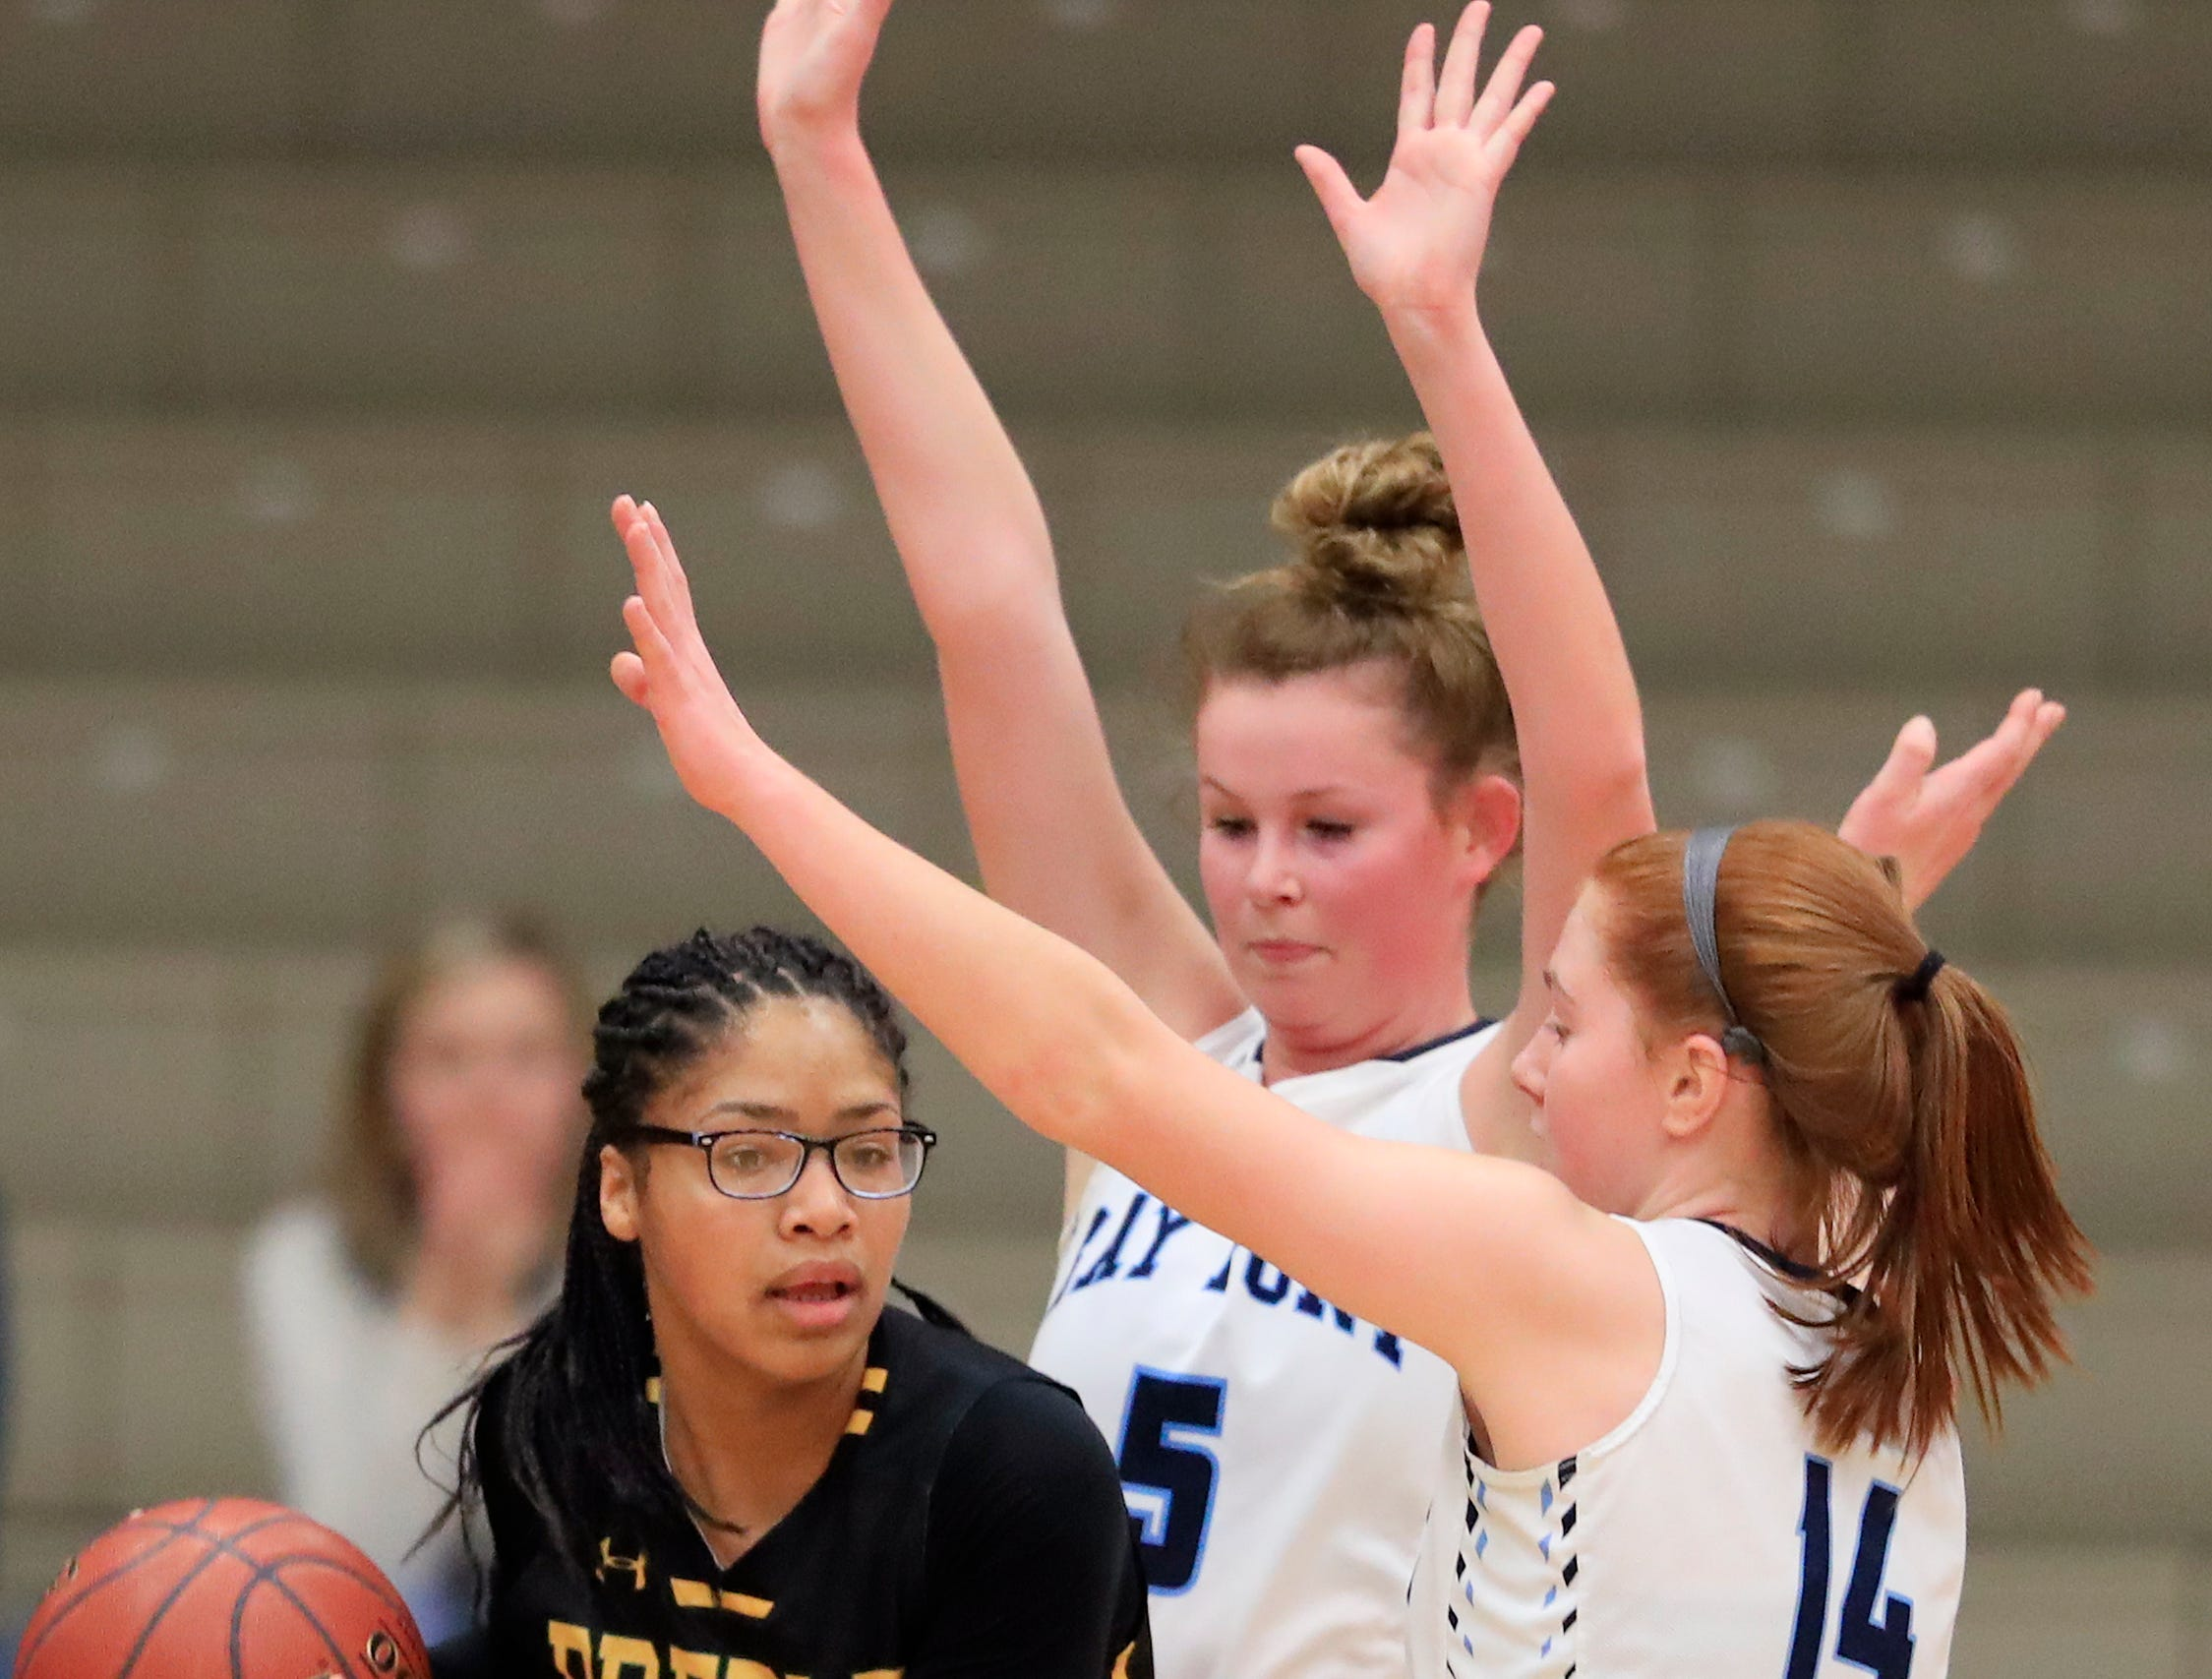 Green Bay Preble's Dominique King (25) gets trapped by Bay Port's Alaina Abel (14) and Peyton Coughlin (5) in a FRCC girls basketball game at Bay Port high school on Friday, February 8, 2019 in Suamico, Wis.